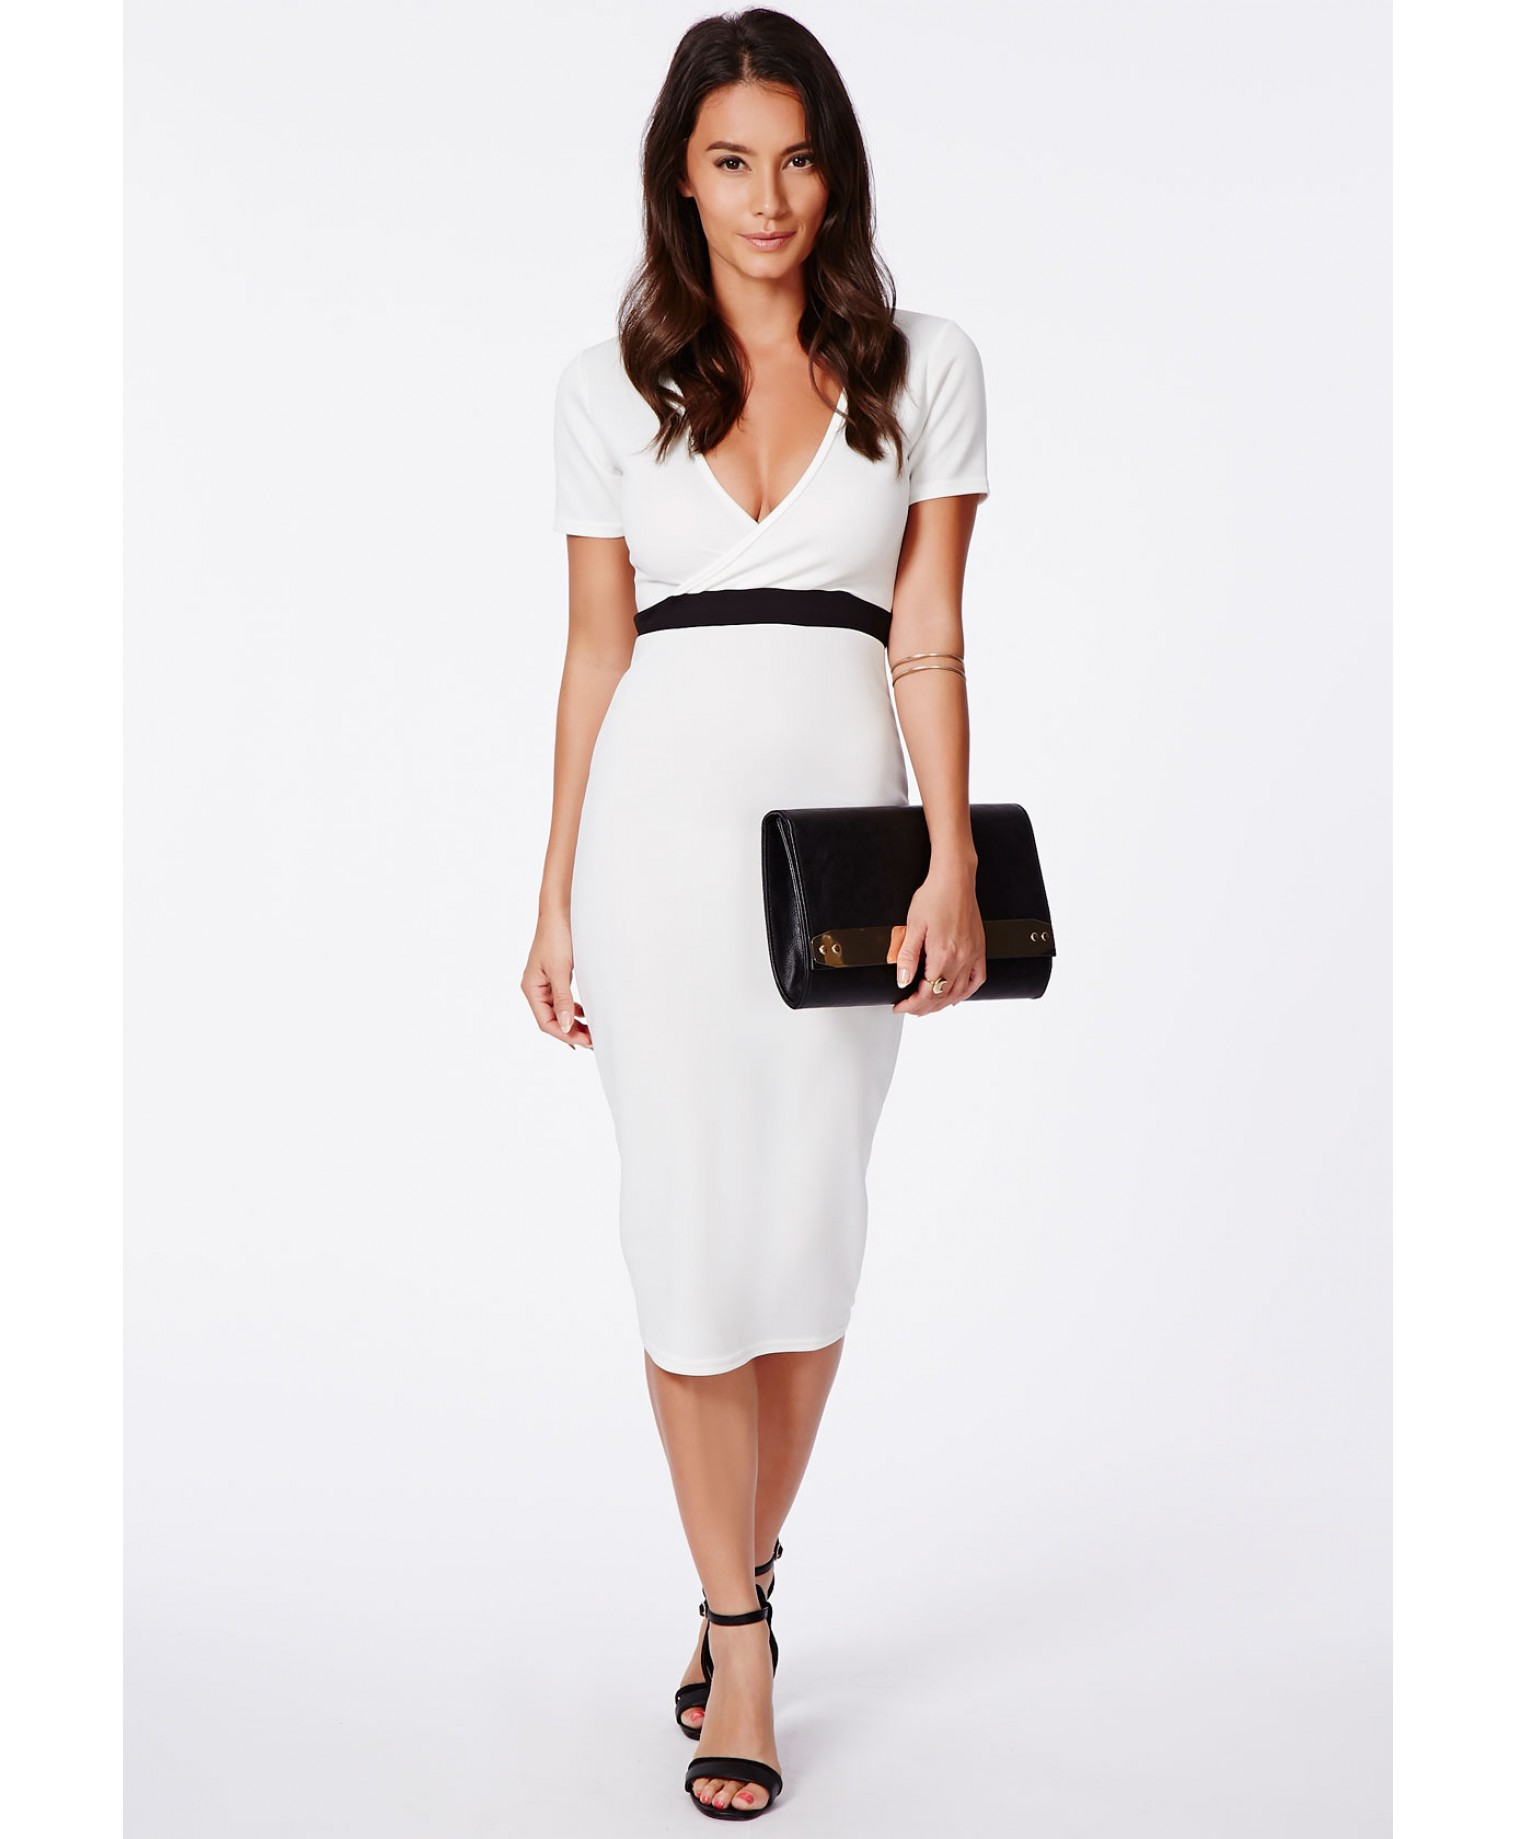 Verda wrap over monochrome contrast midi dress 2